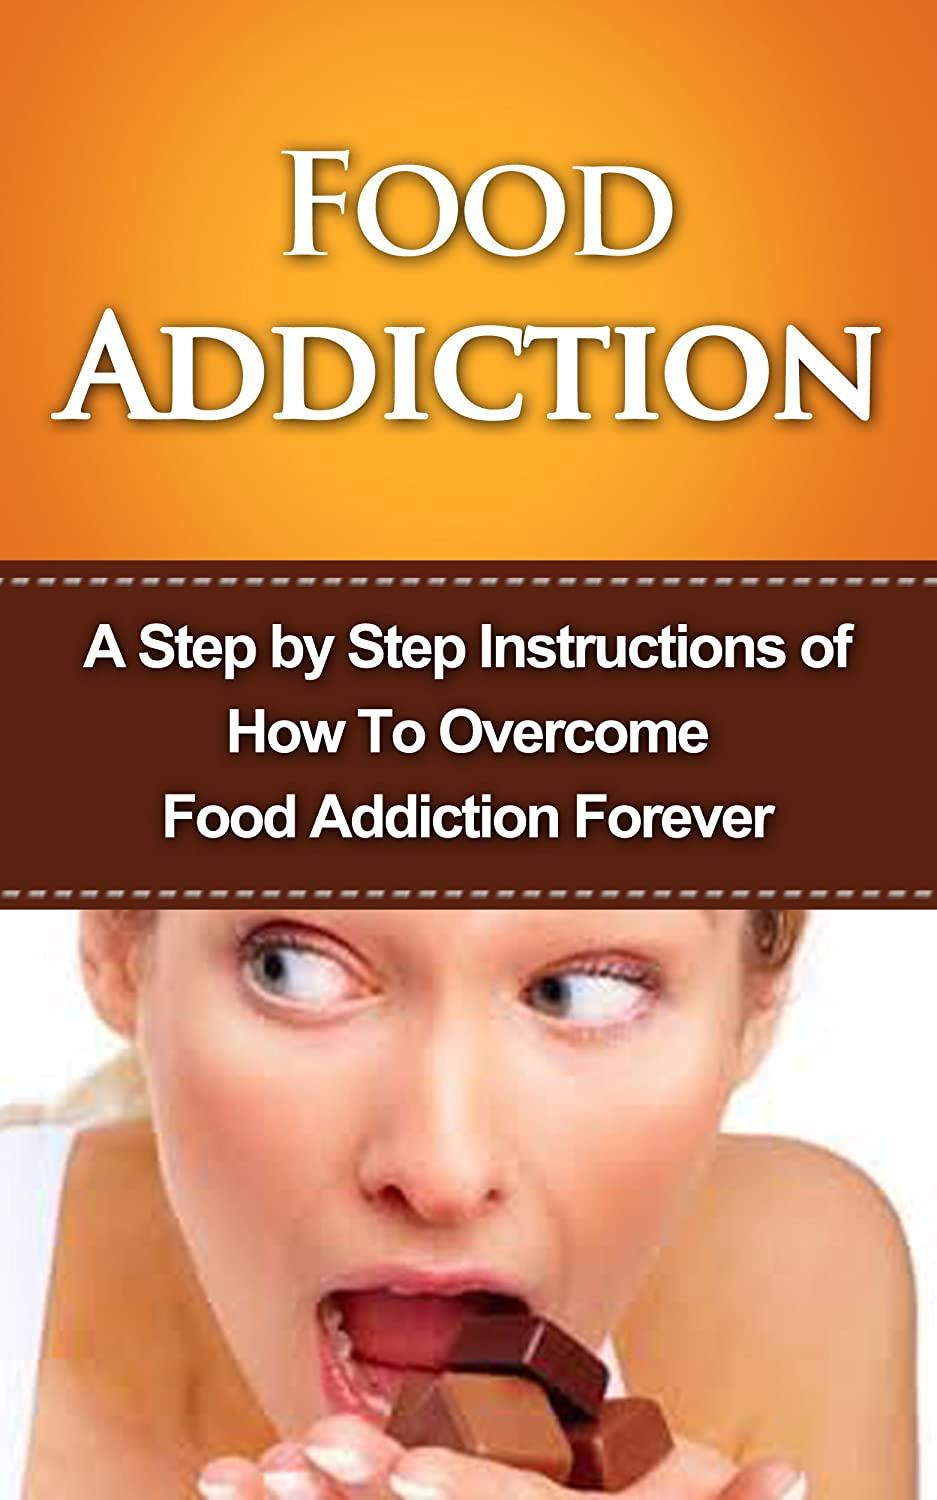 Food-Addiction-eBook-Cover